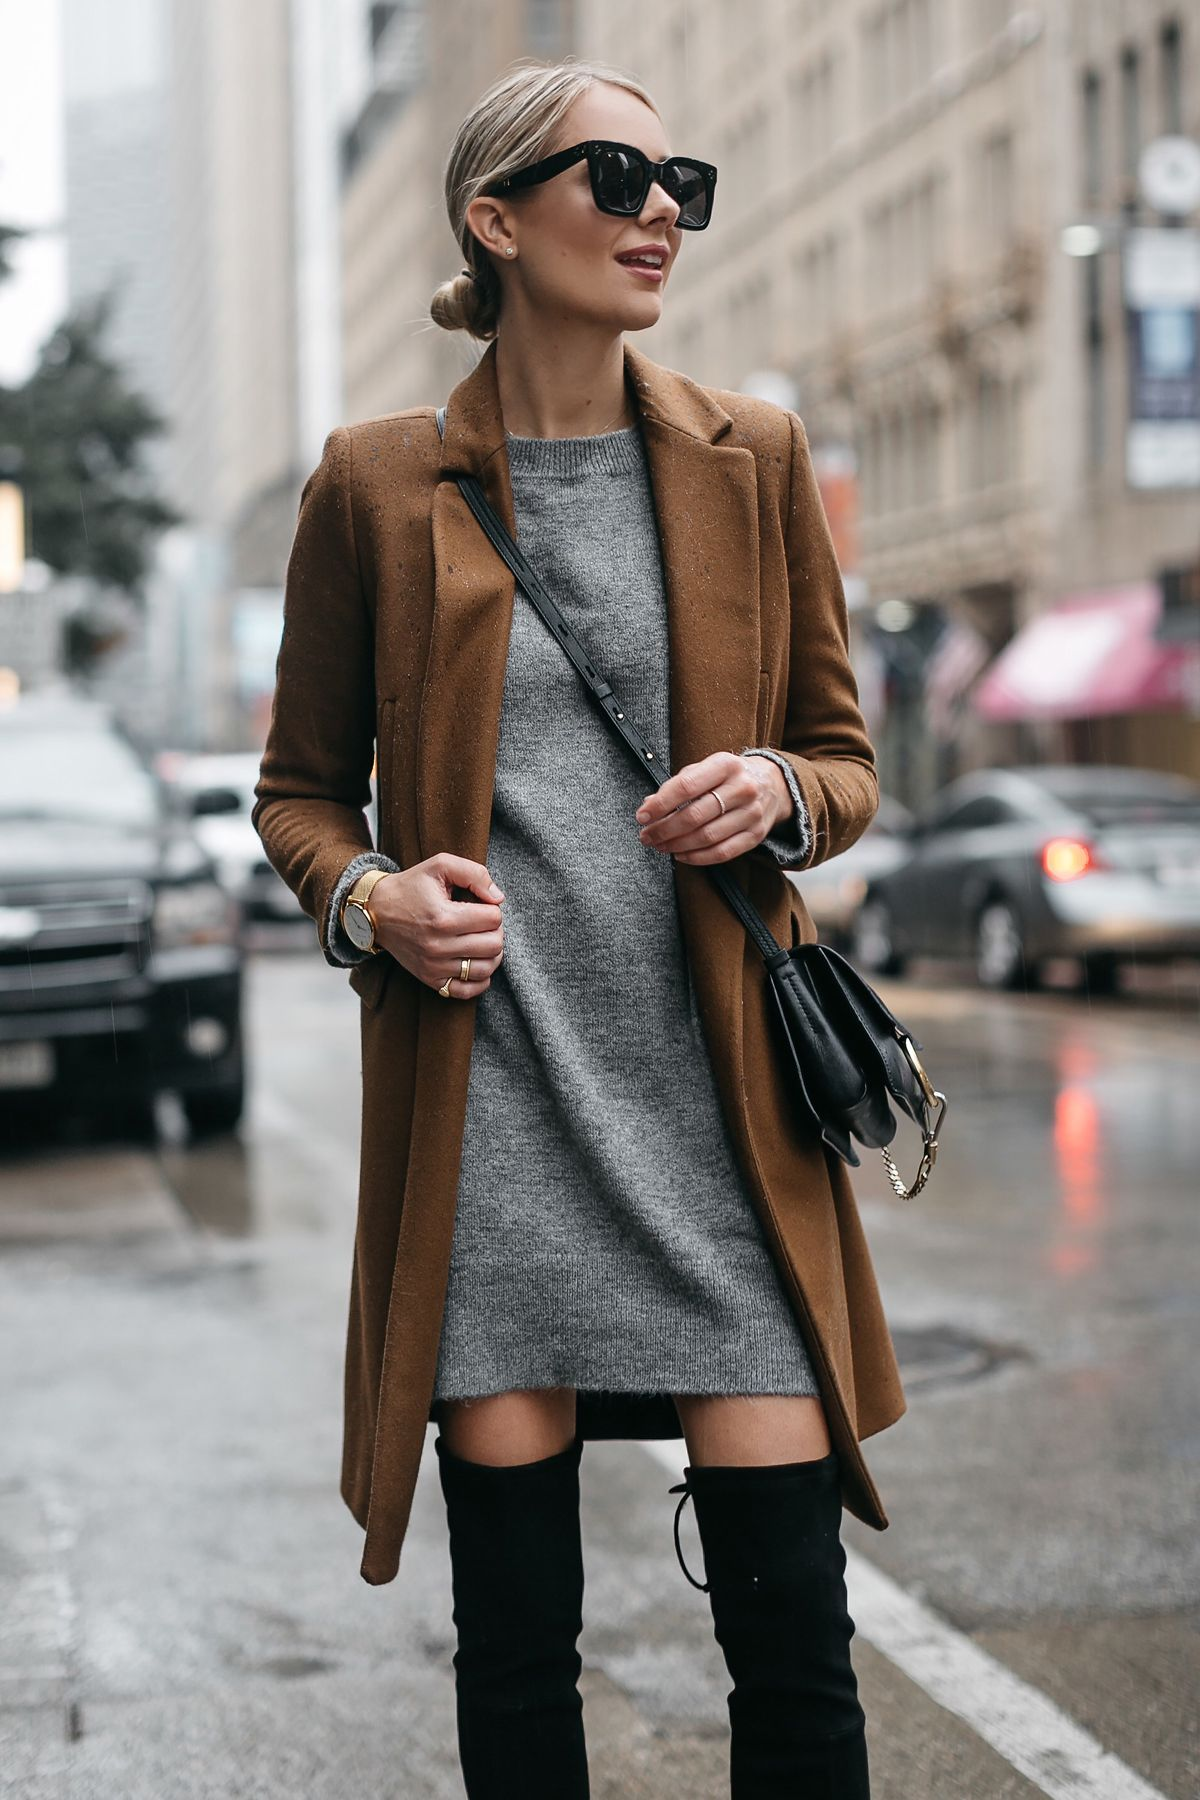 794c0278 Blonde Woman Wearing Zara Camel Wool Coat Topshop Grey Sweater Dress Chloe  Faye Handbag Fashion Jackson Dallas Blogger Fashion Blogger Street Style